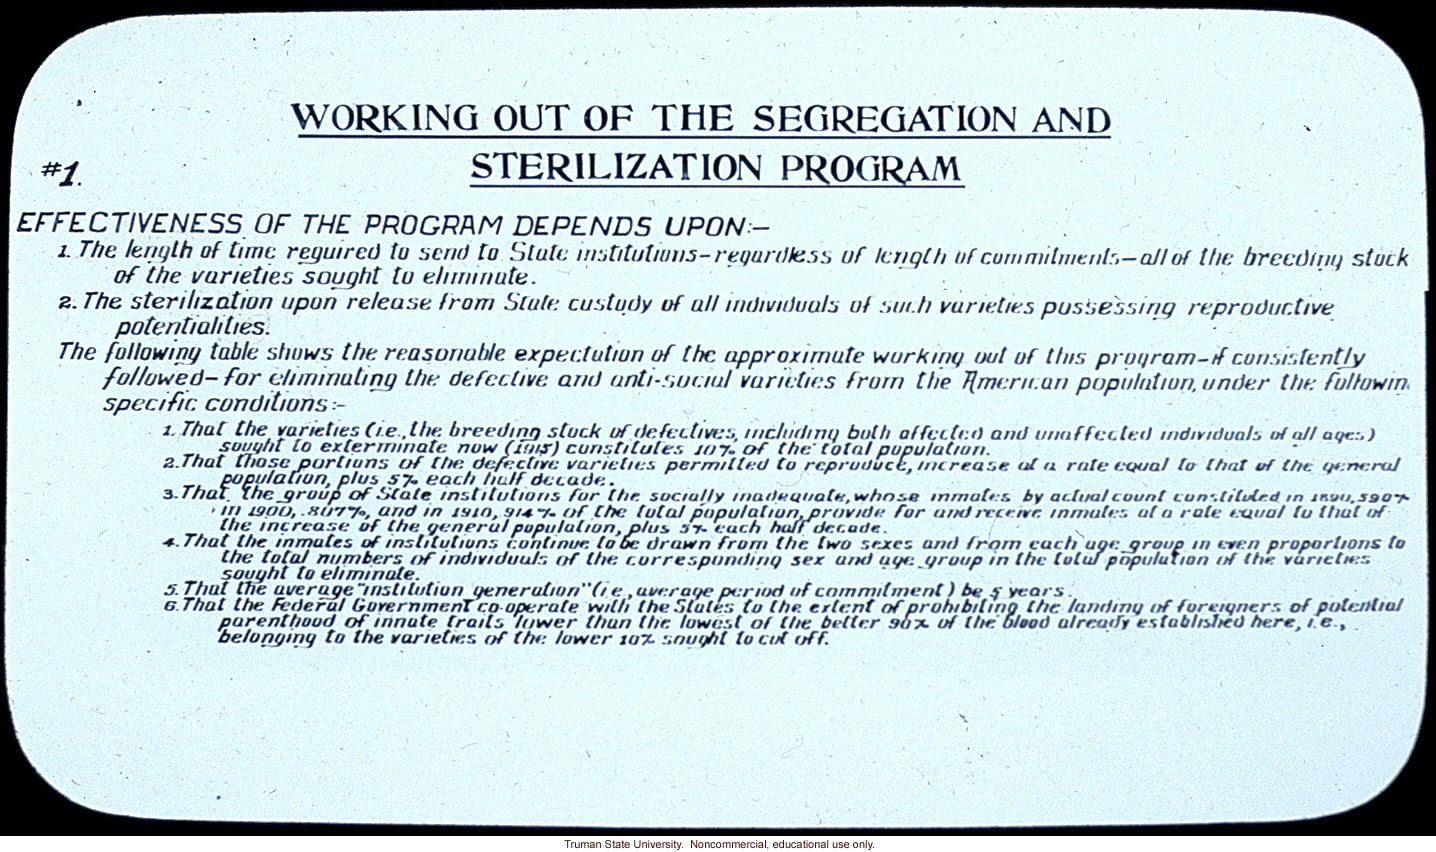 &quote;Working out of the segregation and sterilization program&quote;